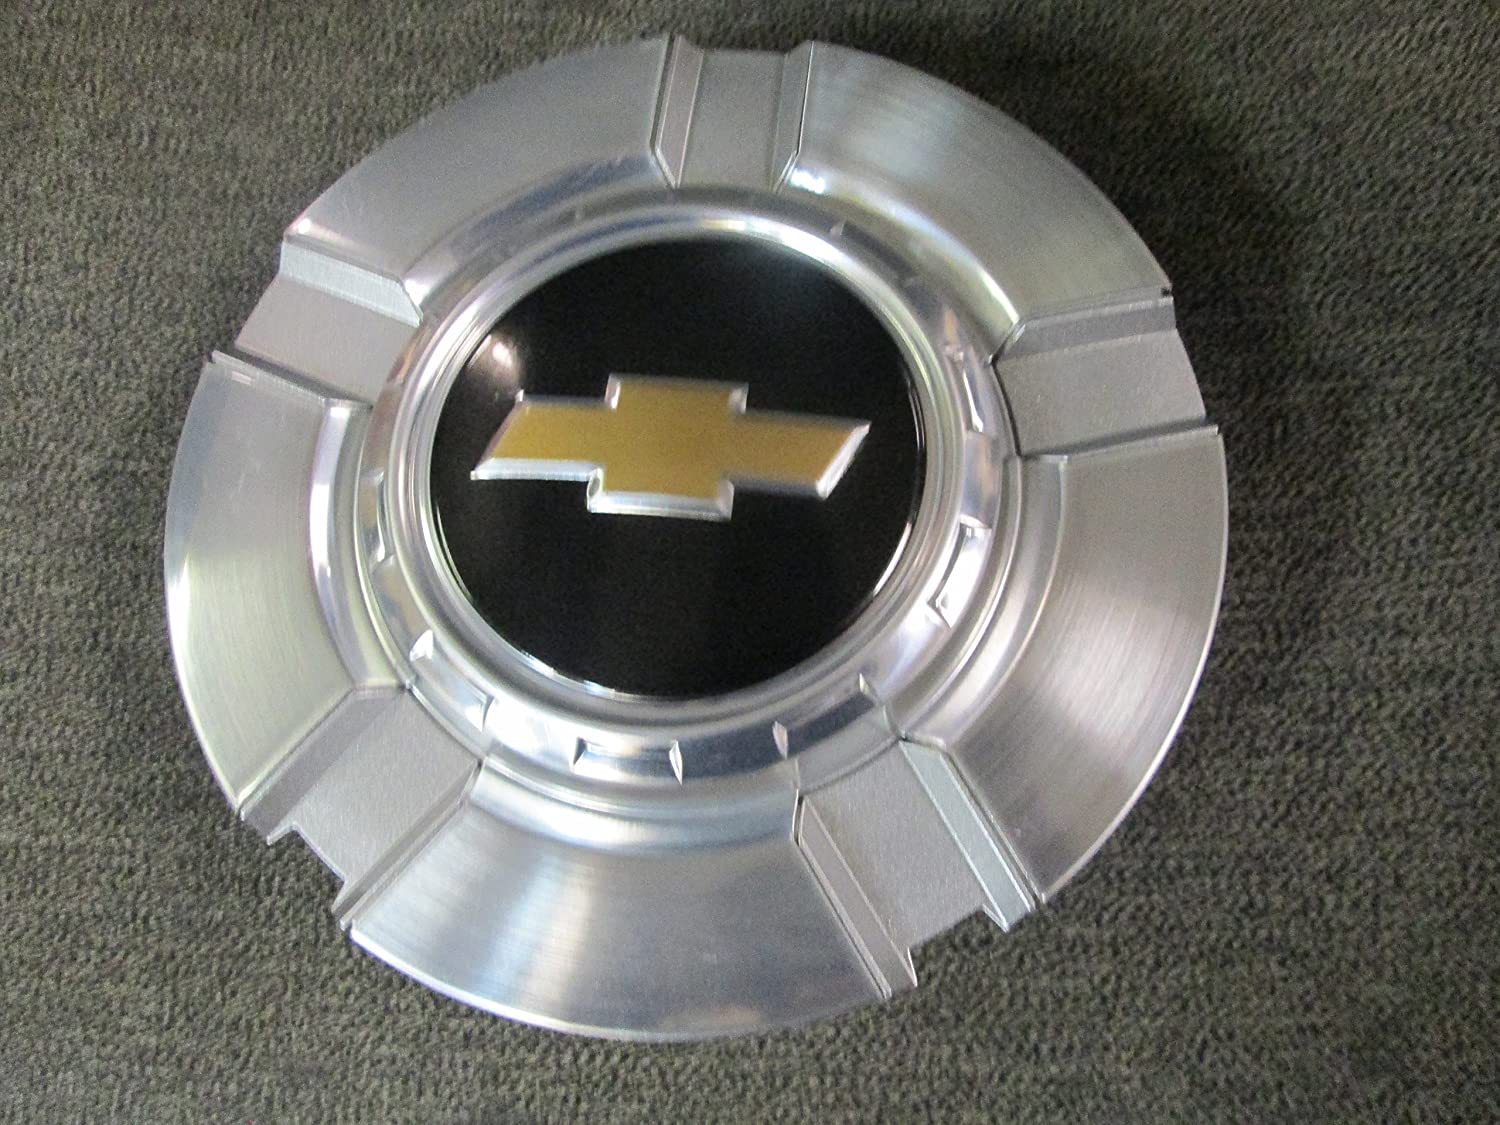 18 Inch OEM Chevy 6 Lug Machined aluminum Center Cap Hubcap Wheel Cover 2007-2014 # 9596343 or 9597991 5291 Silverado Suburban Tahoe Avalanche 1500 Pickup Truck Suv: Automotive